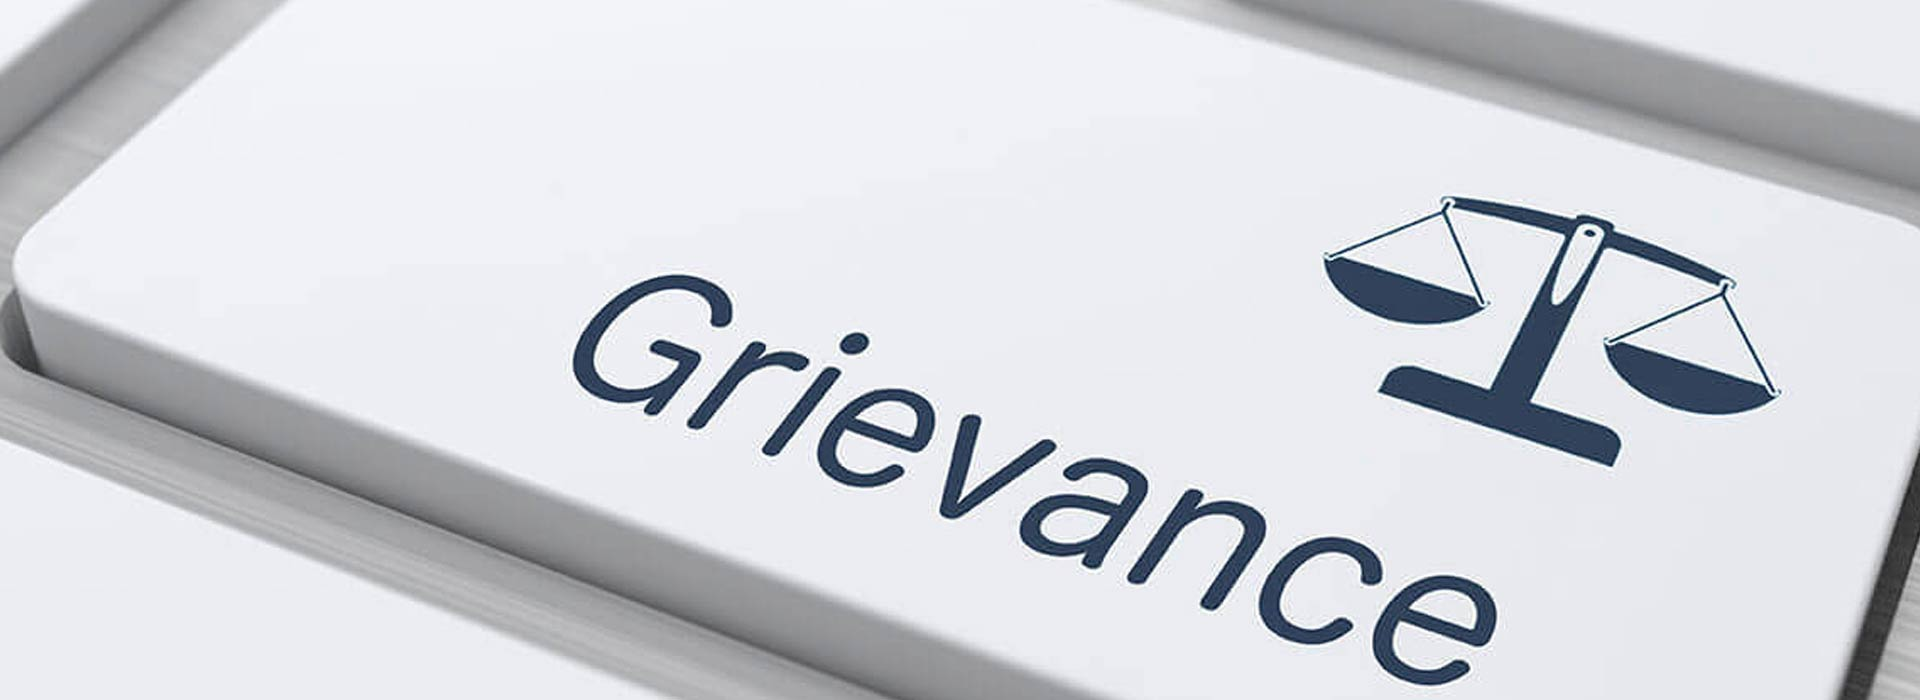 Grievance Cell | Captain Pipes Ltd.